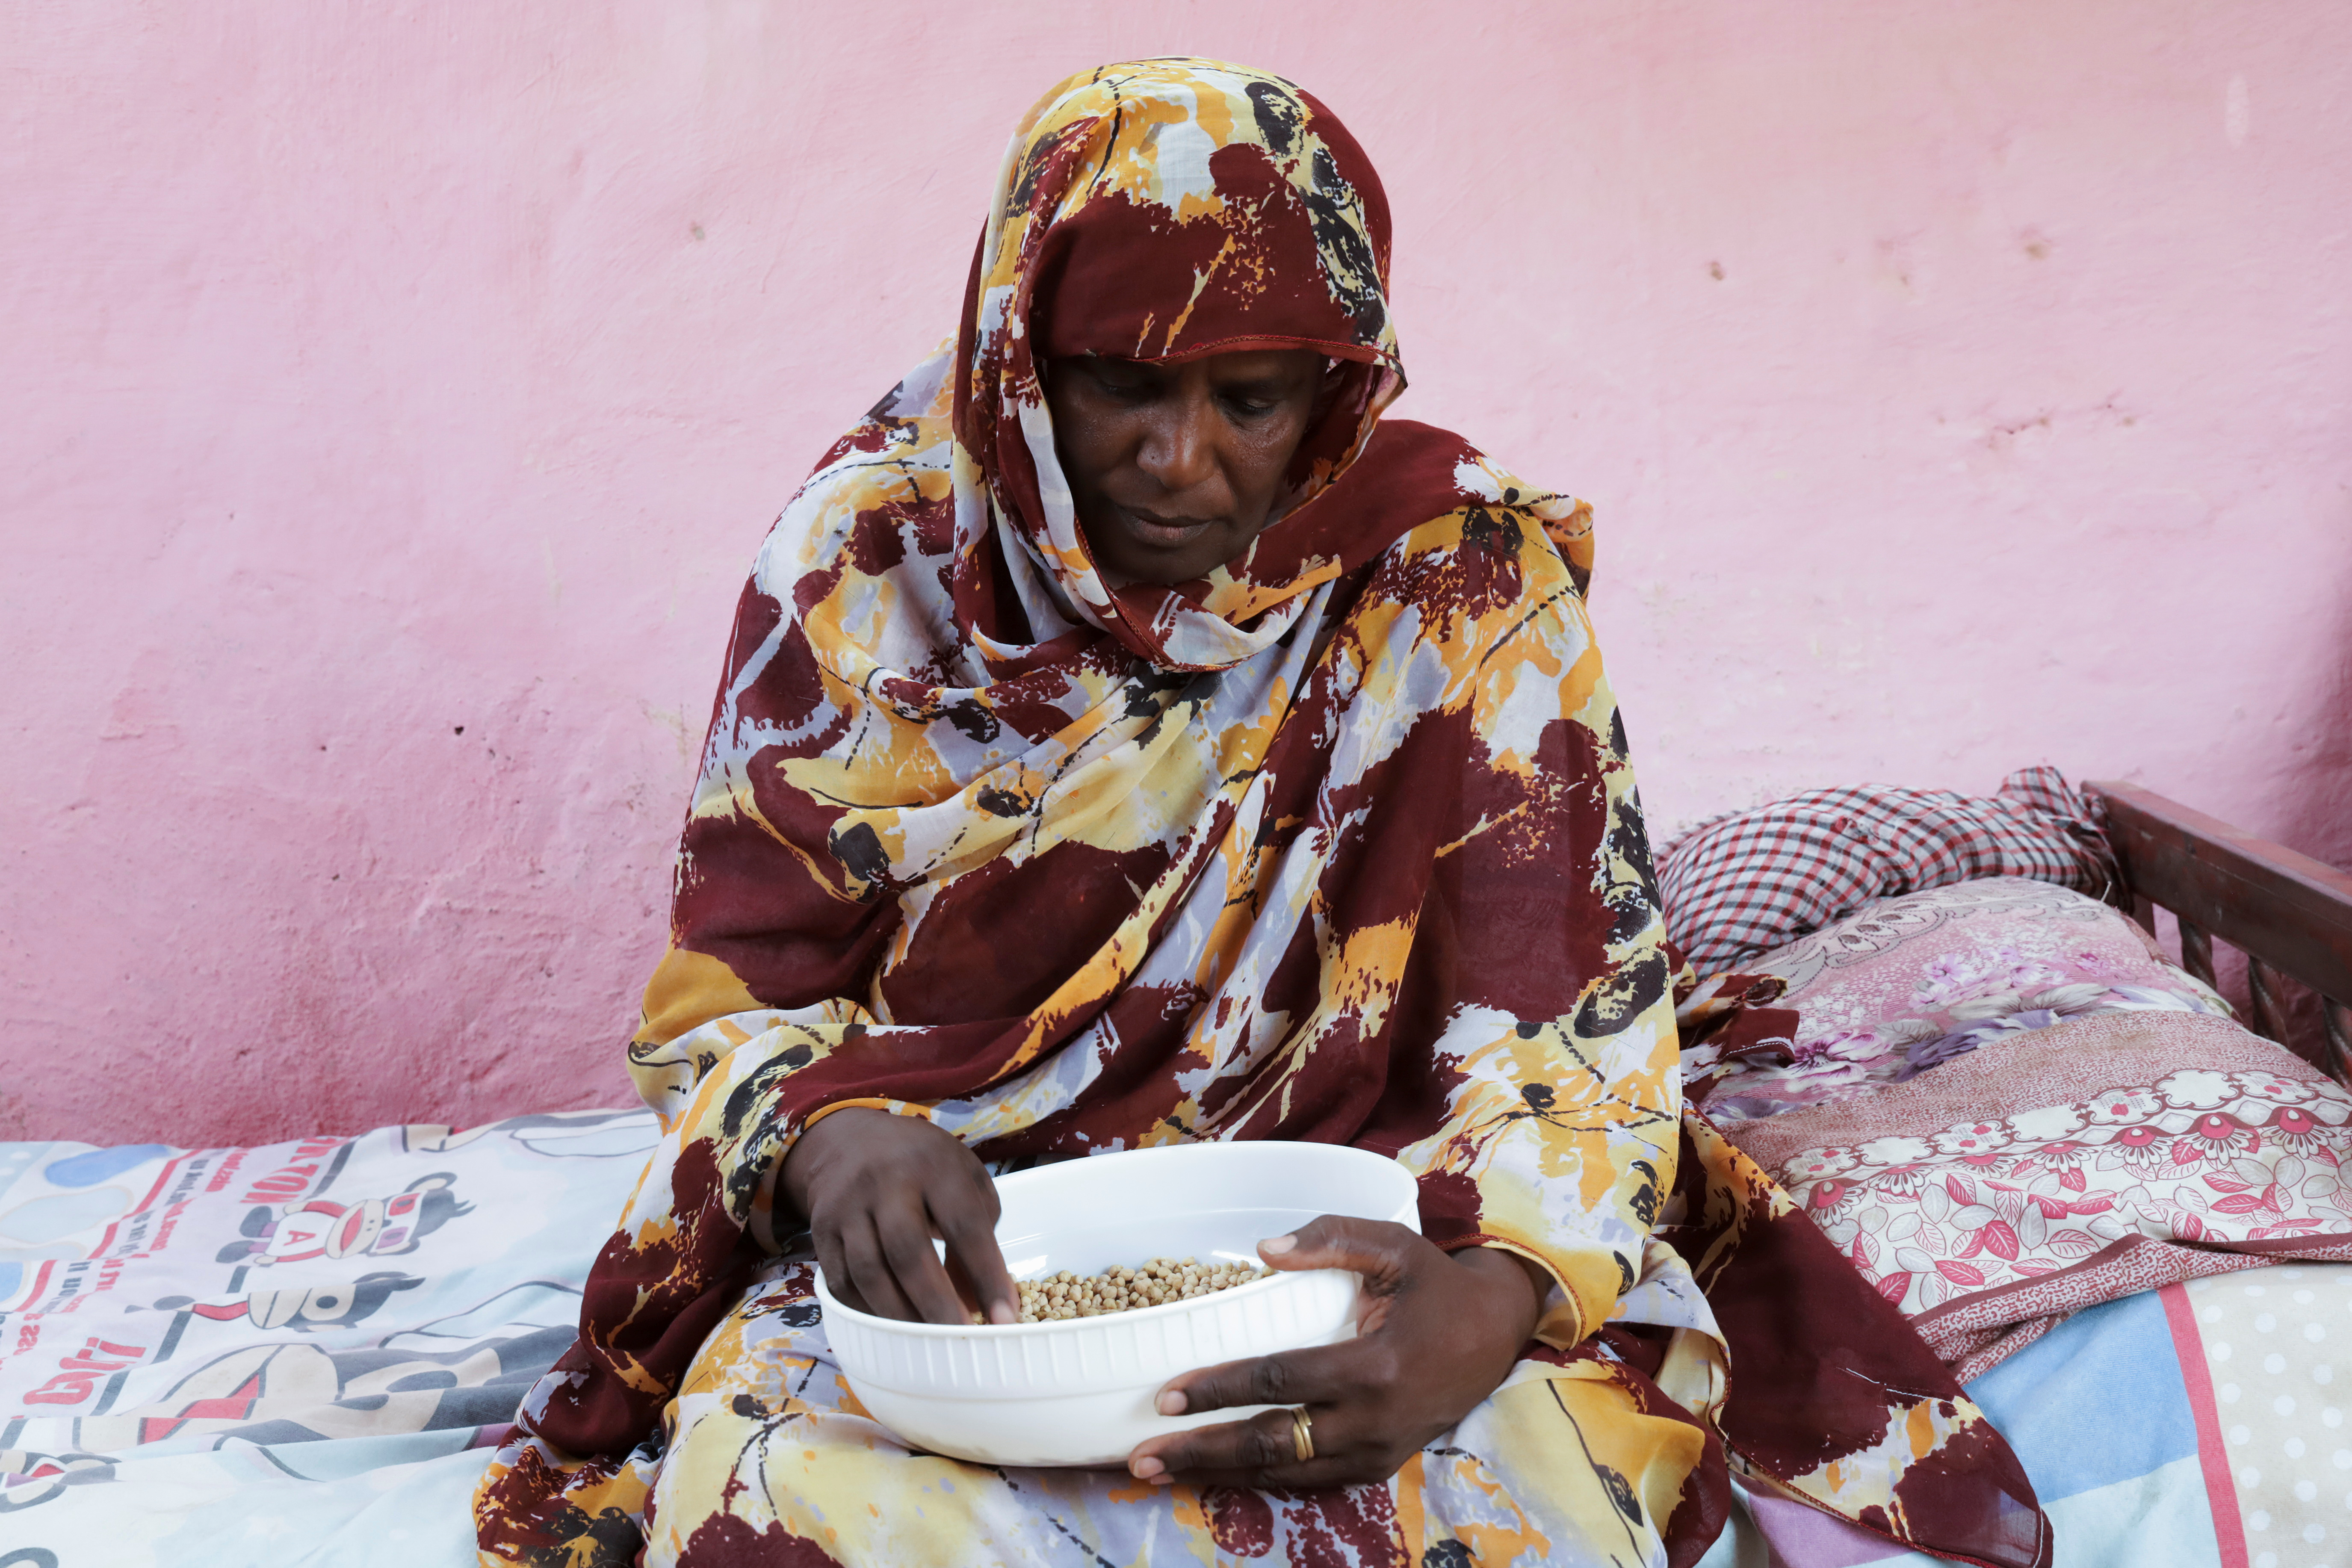 Magda Ahmed, Sudanese mother of orphan children who applied for Sudan's Thamarat Family Support Programme, holds a bowl of food in South Khartoum April 26, 2021. REUTERS/El-Tayeb Siddig